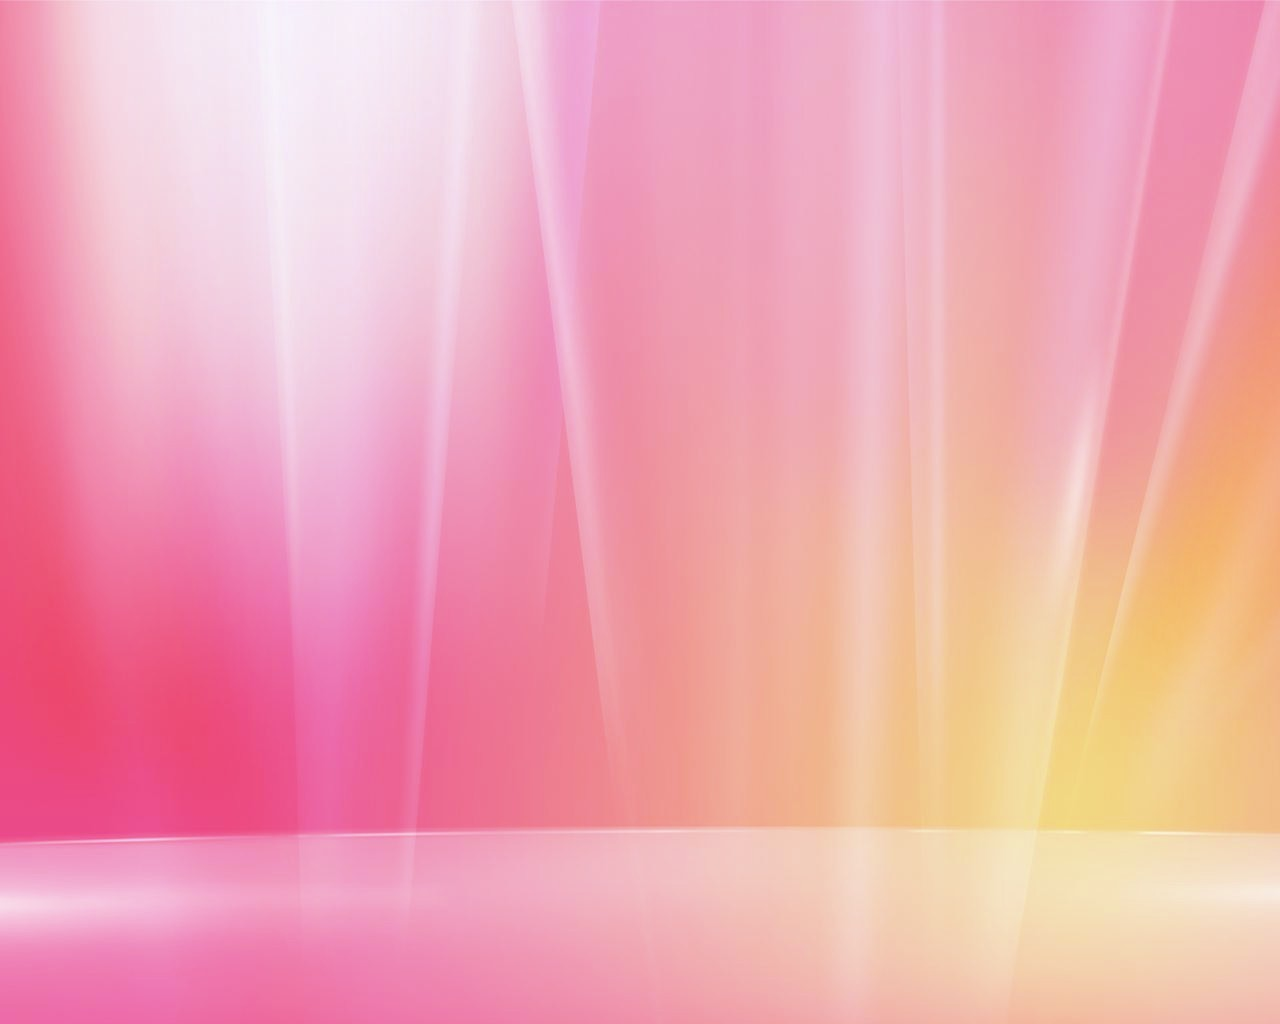 Pink wallpaper colors wallpaper 34511769 fanpop for Image de fond